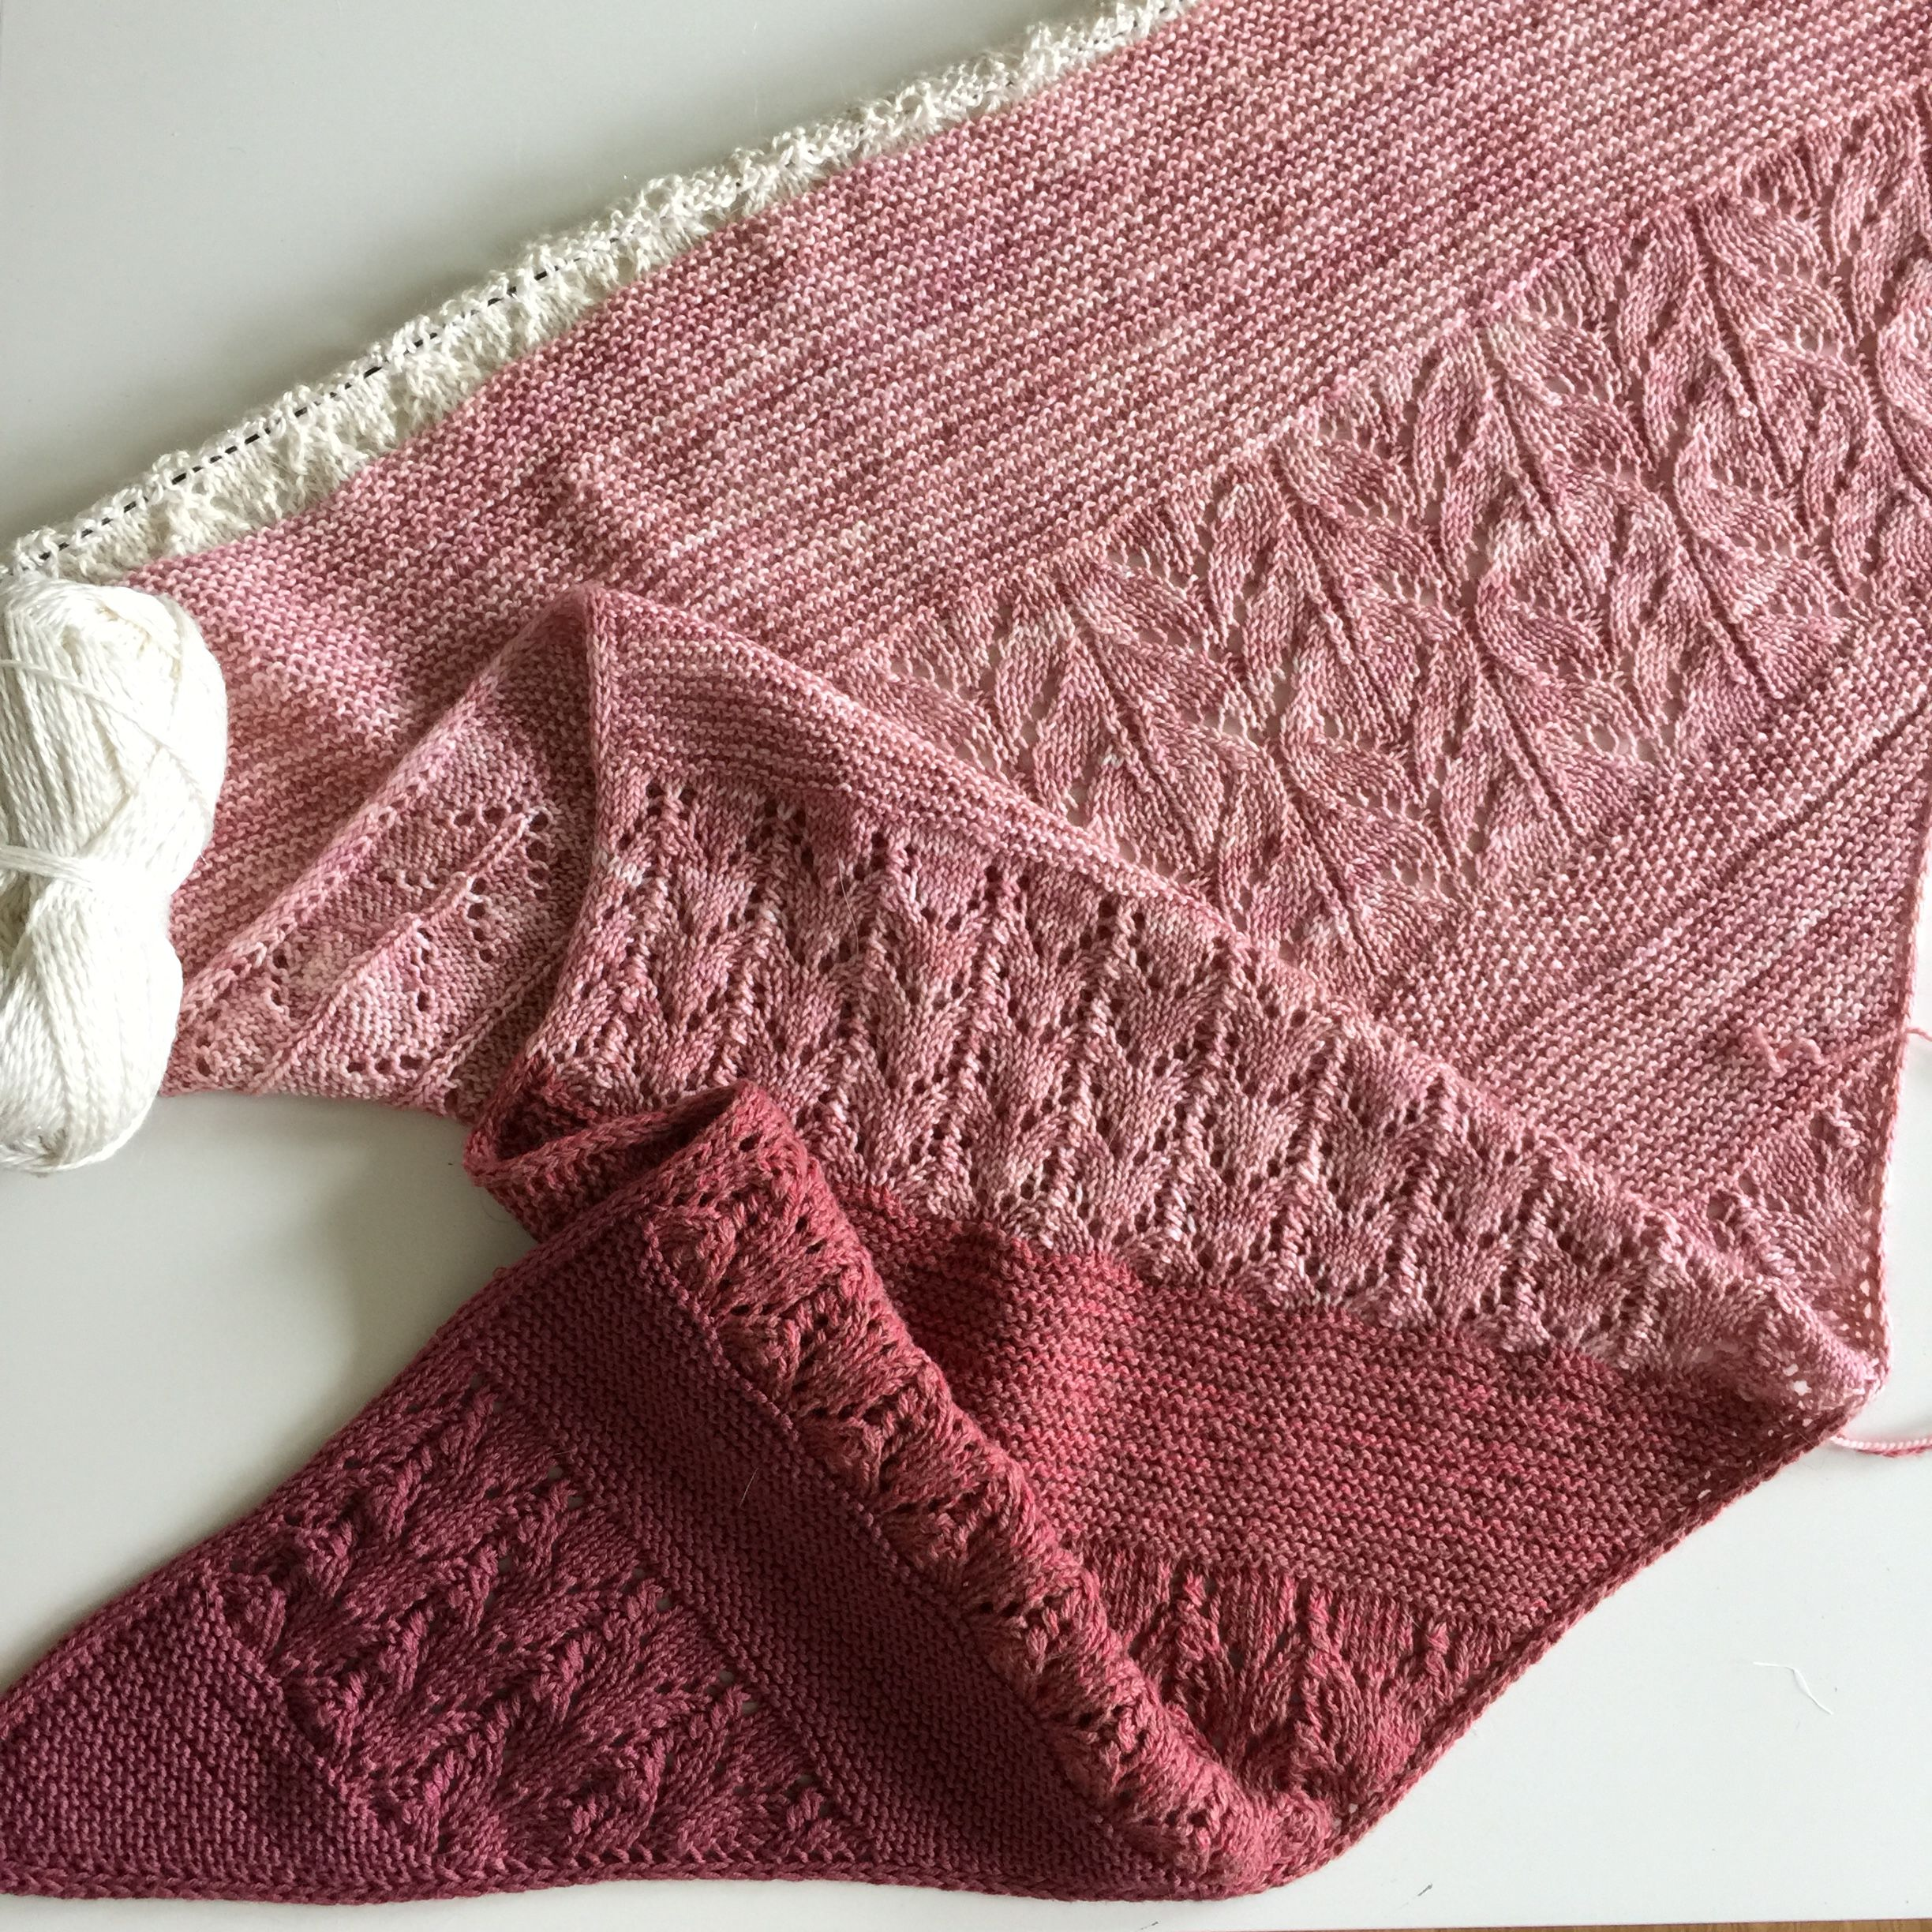 Preview of my next upcoming Shawl pattern, the Be So Good shawl ...